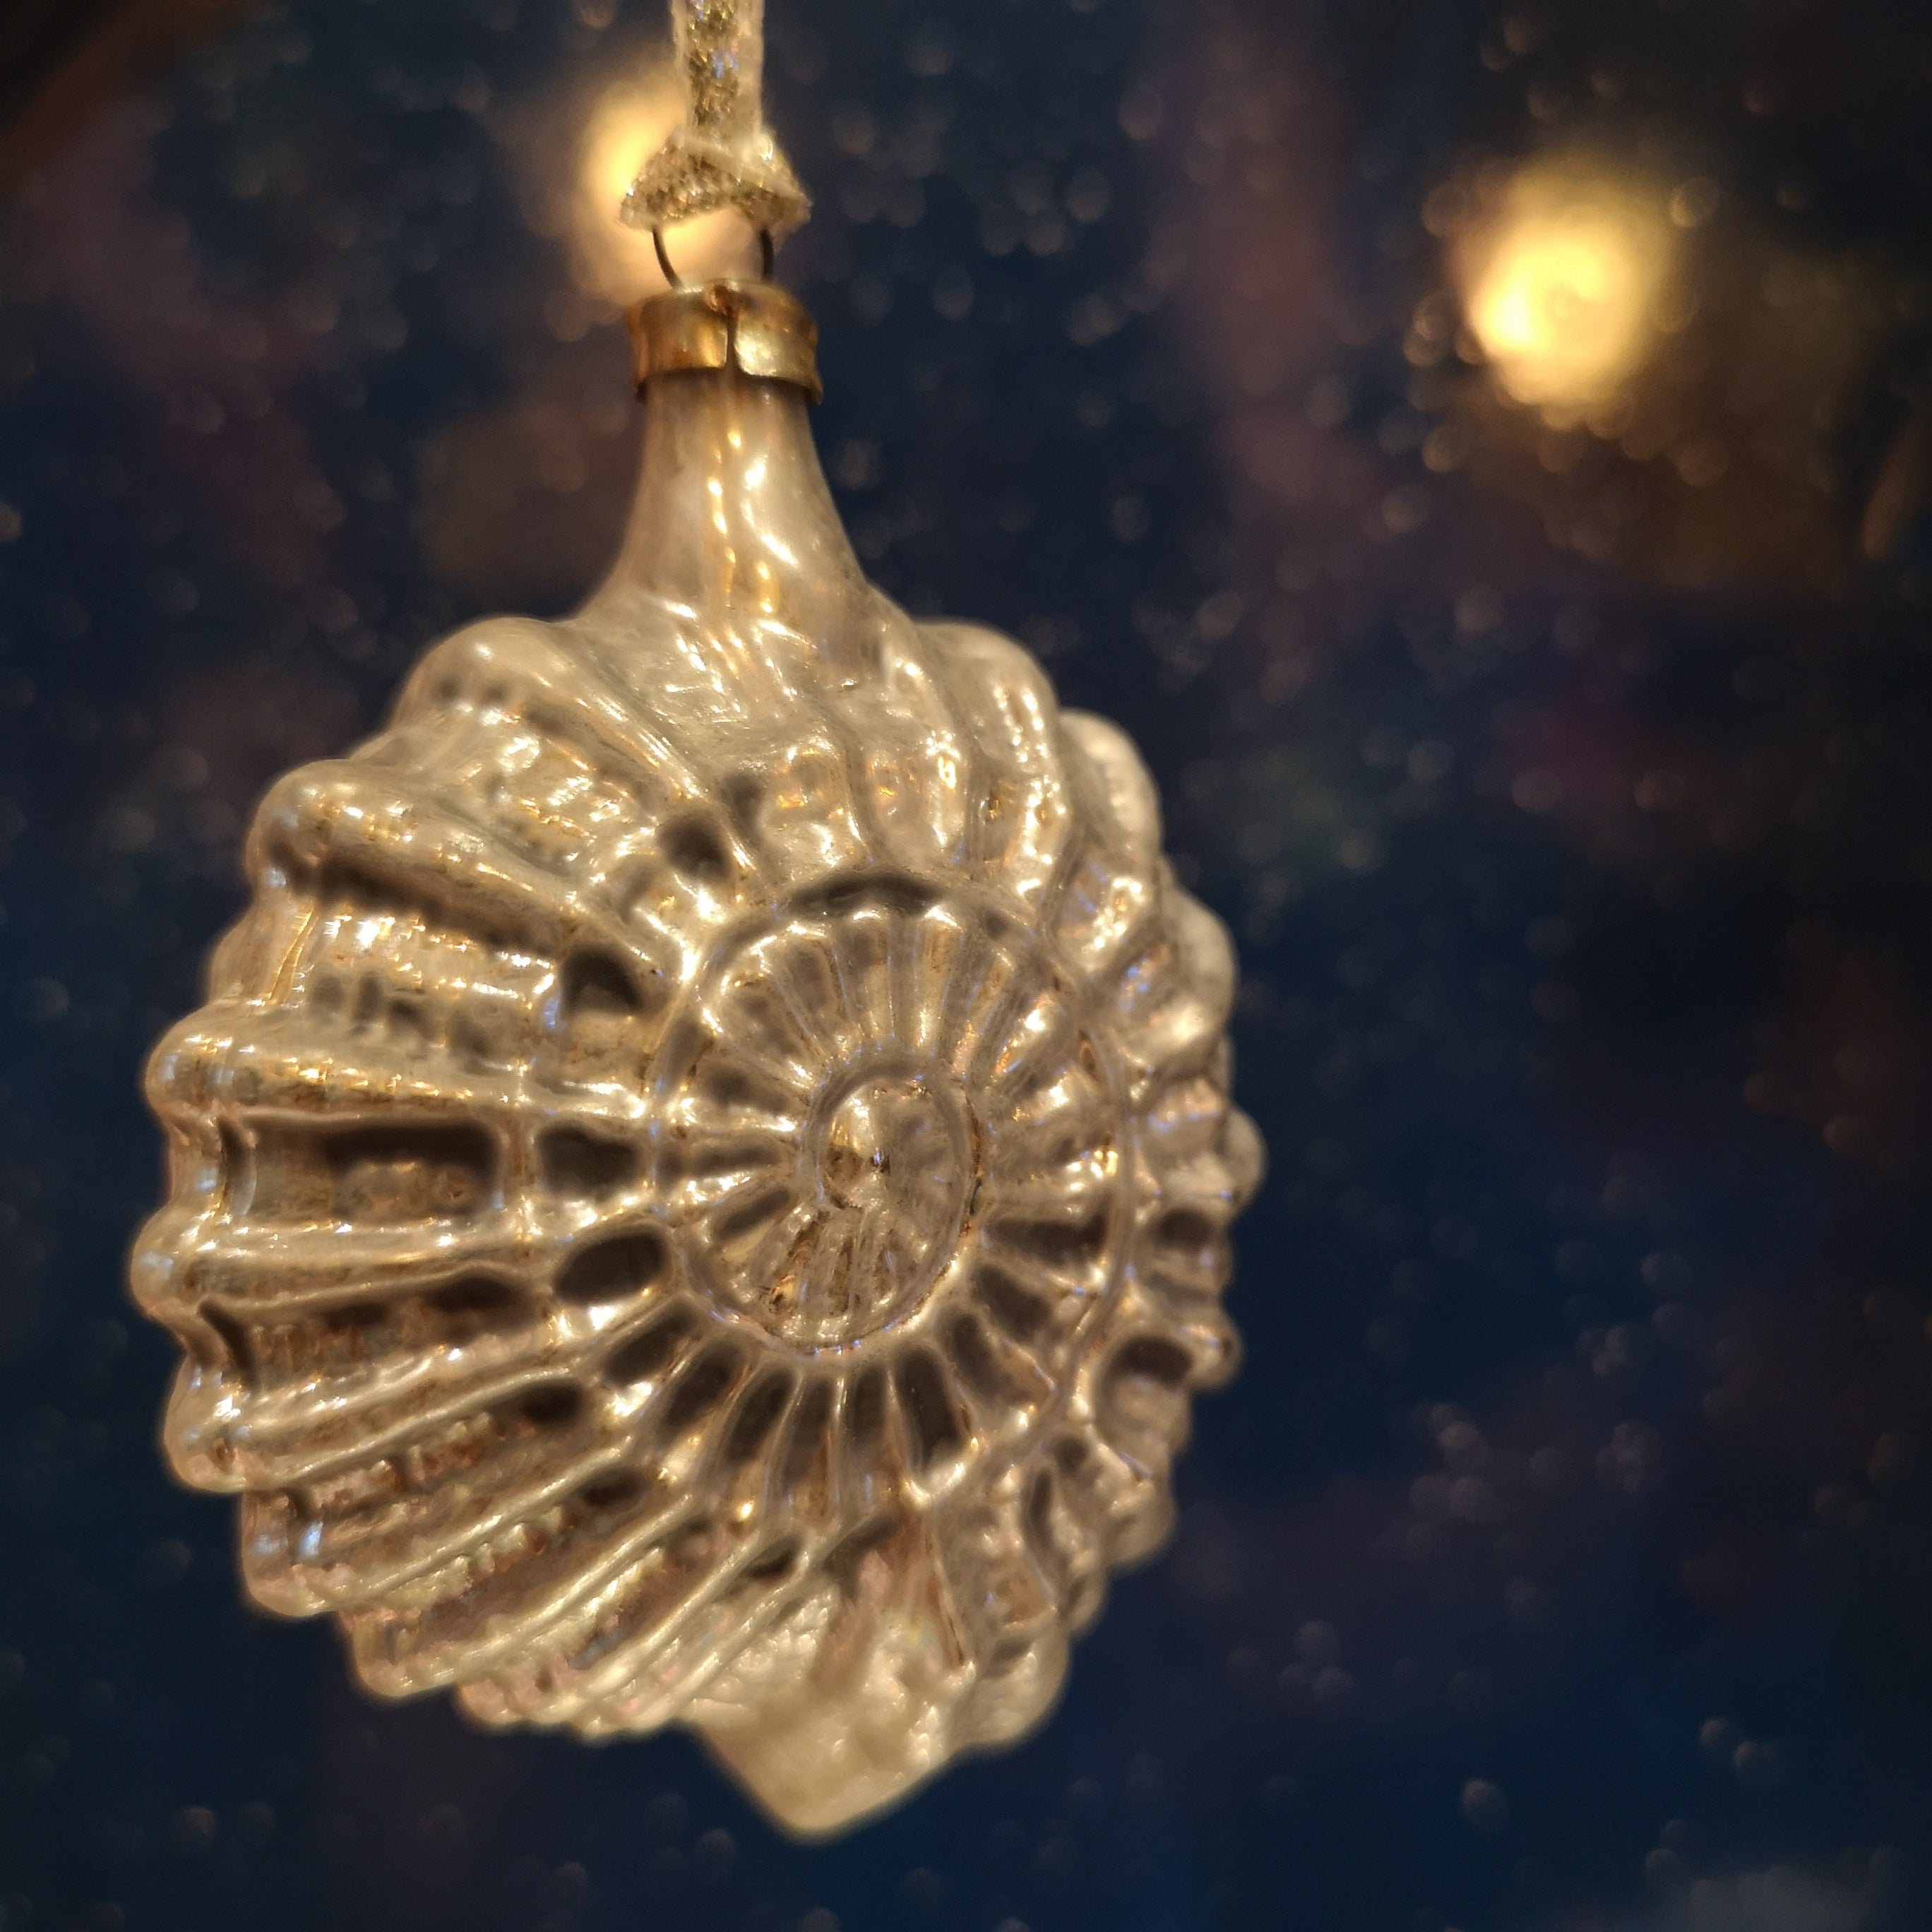 Silver snail shell glass decoration